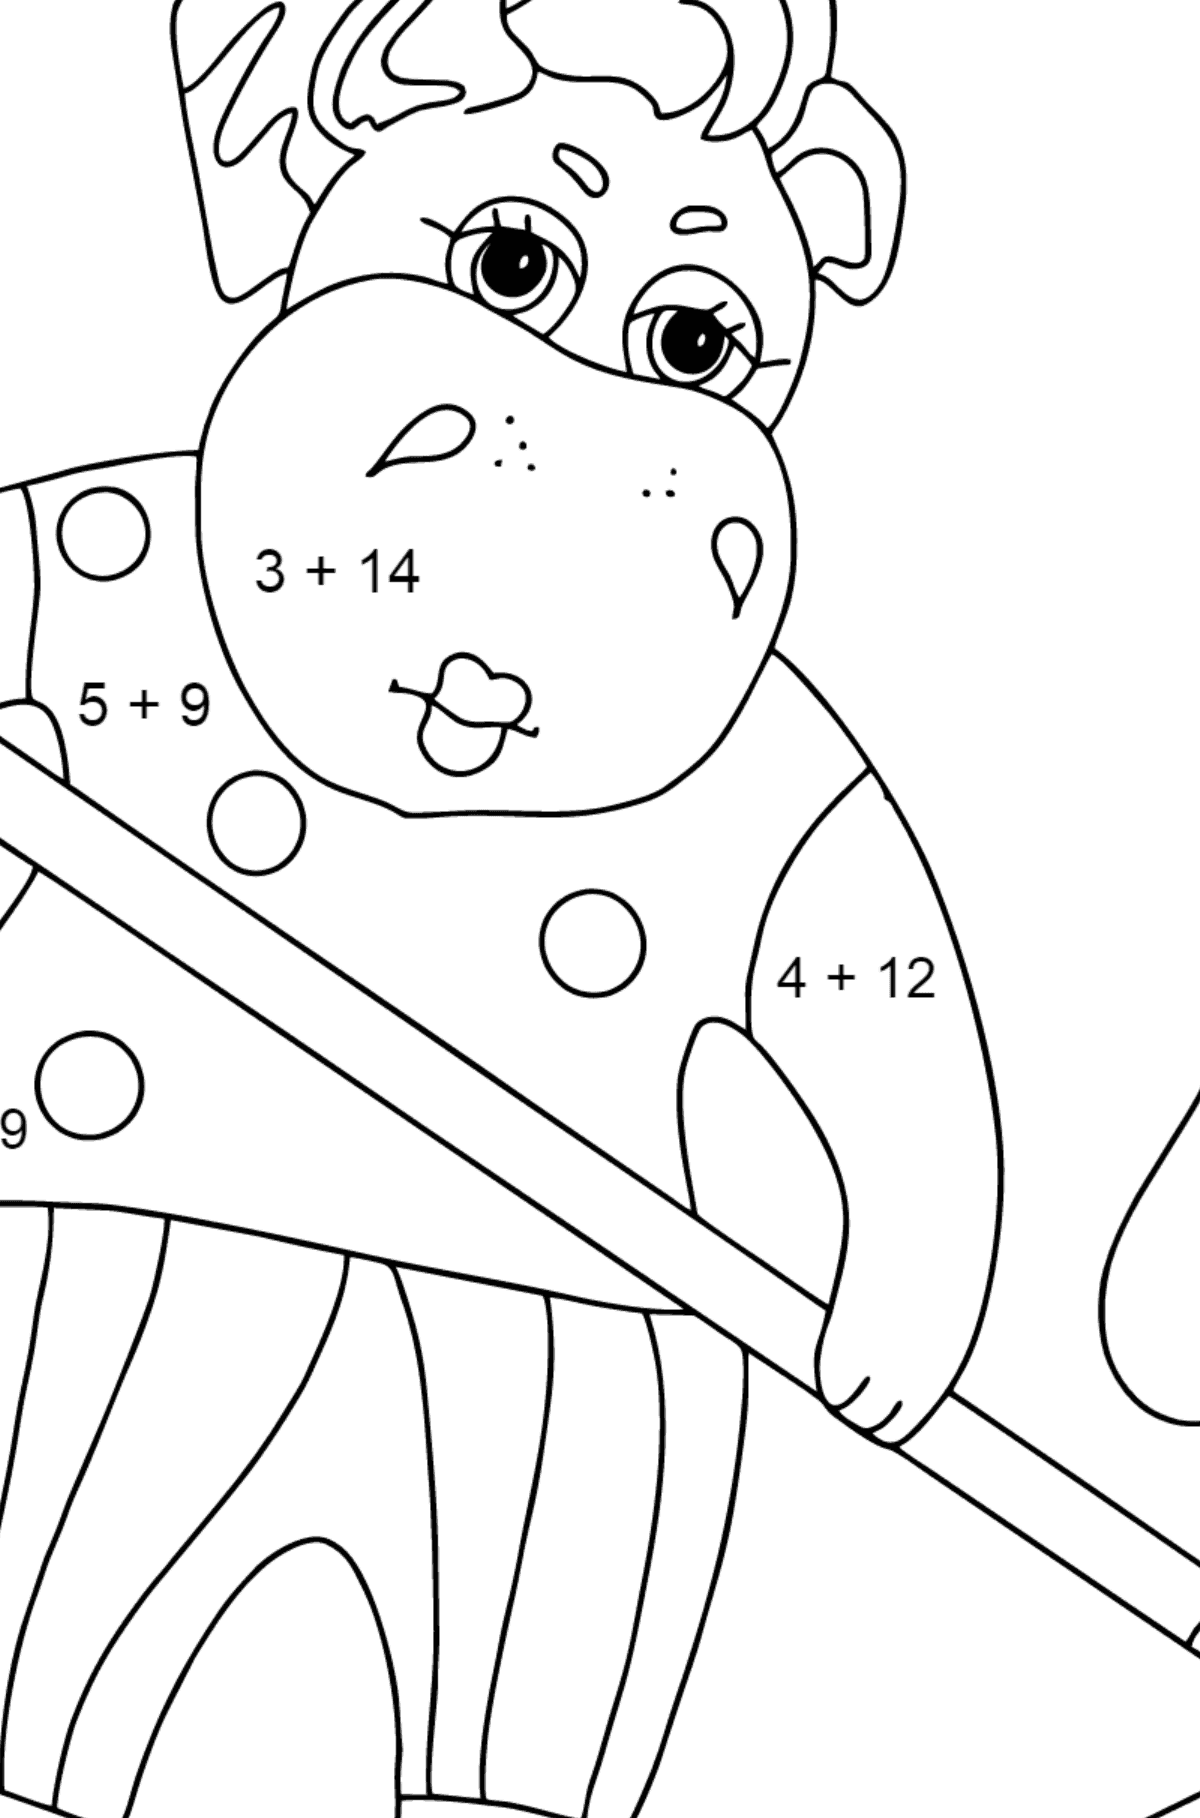 Coloring Page - A Hippo is Collecting Fallen Leaves for Kids  - Color by Number Addition